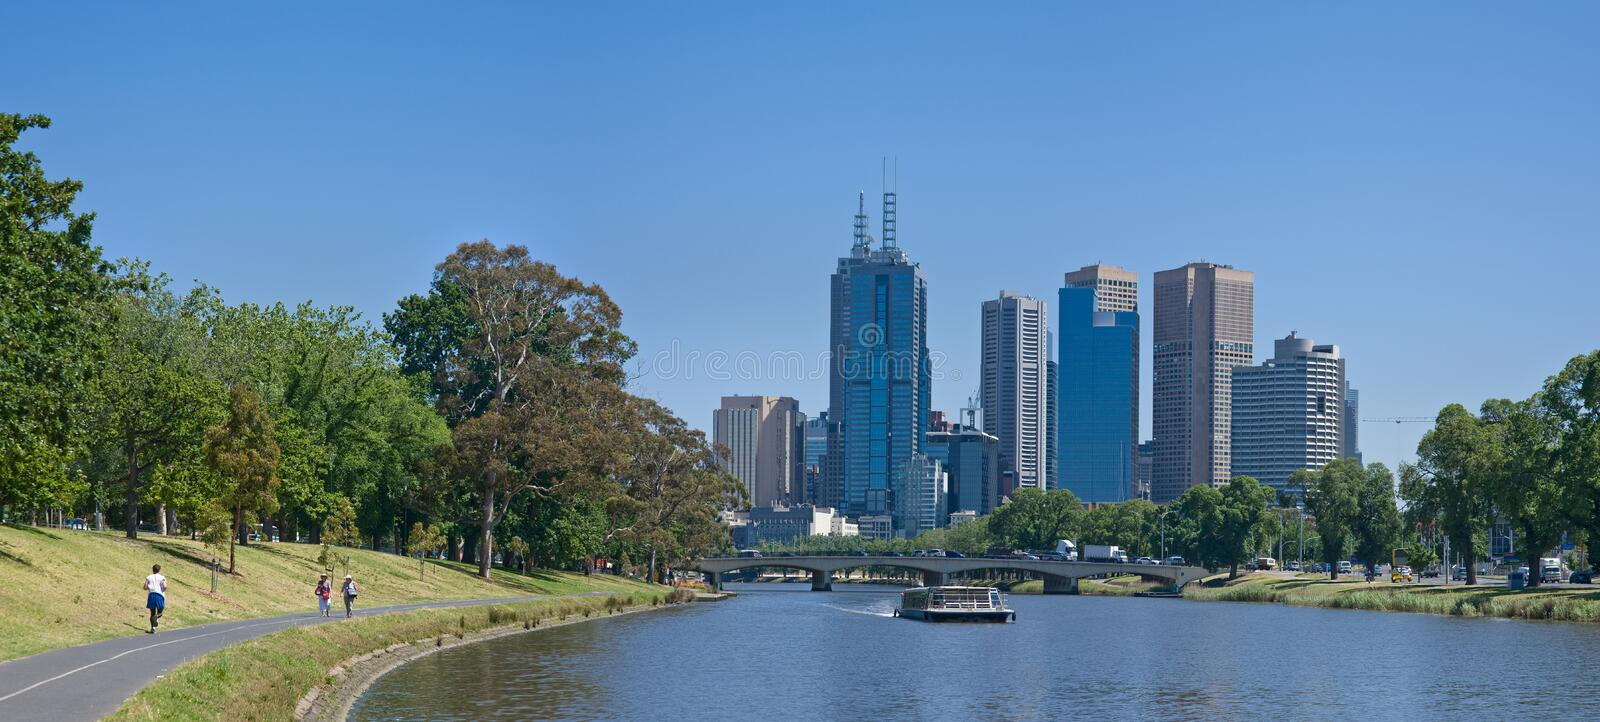 Download Melbourne Skyline Along The Yarra River Stock Image - Image of banking, skyscrapers: 7657755